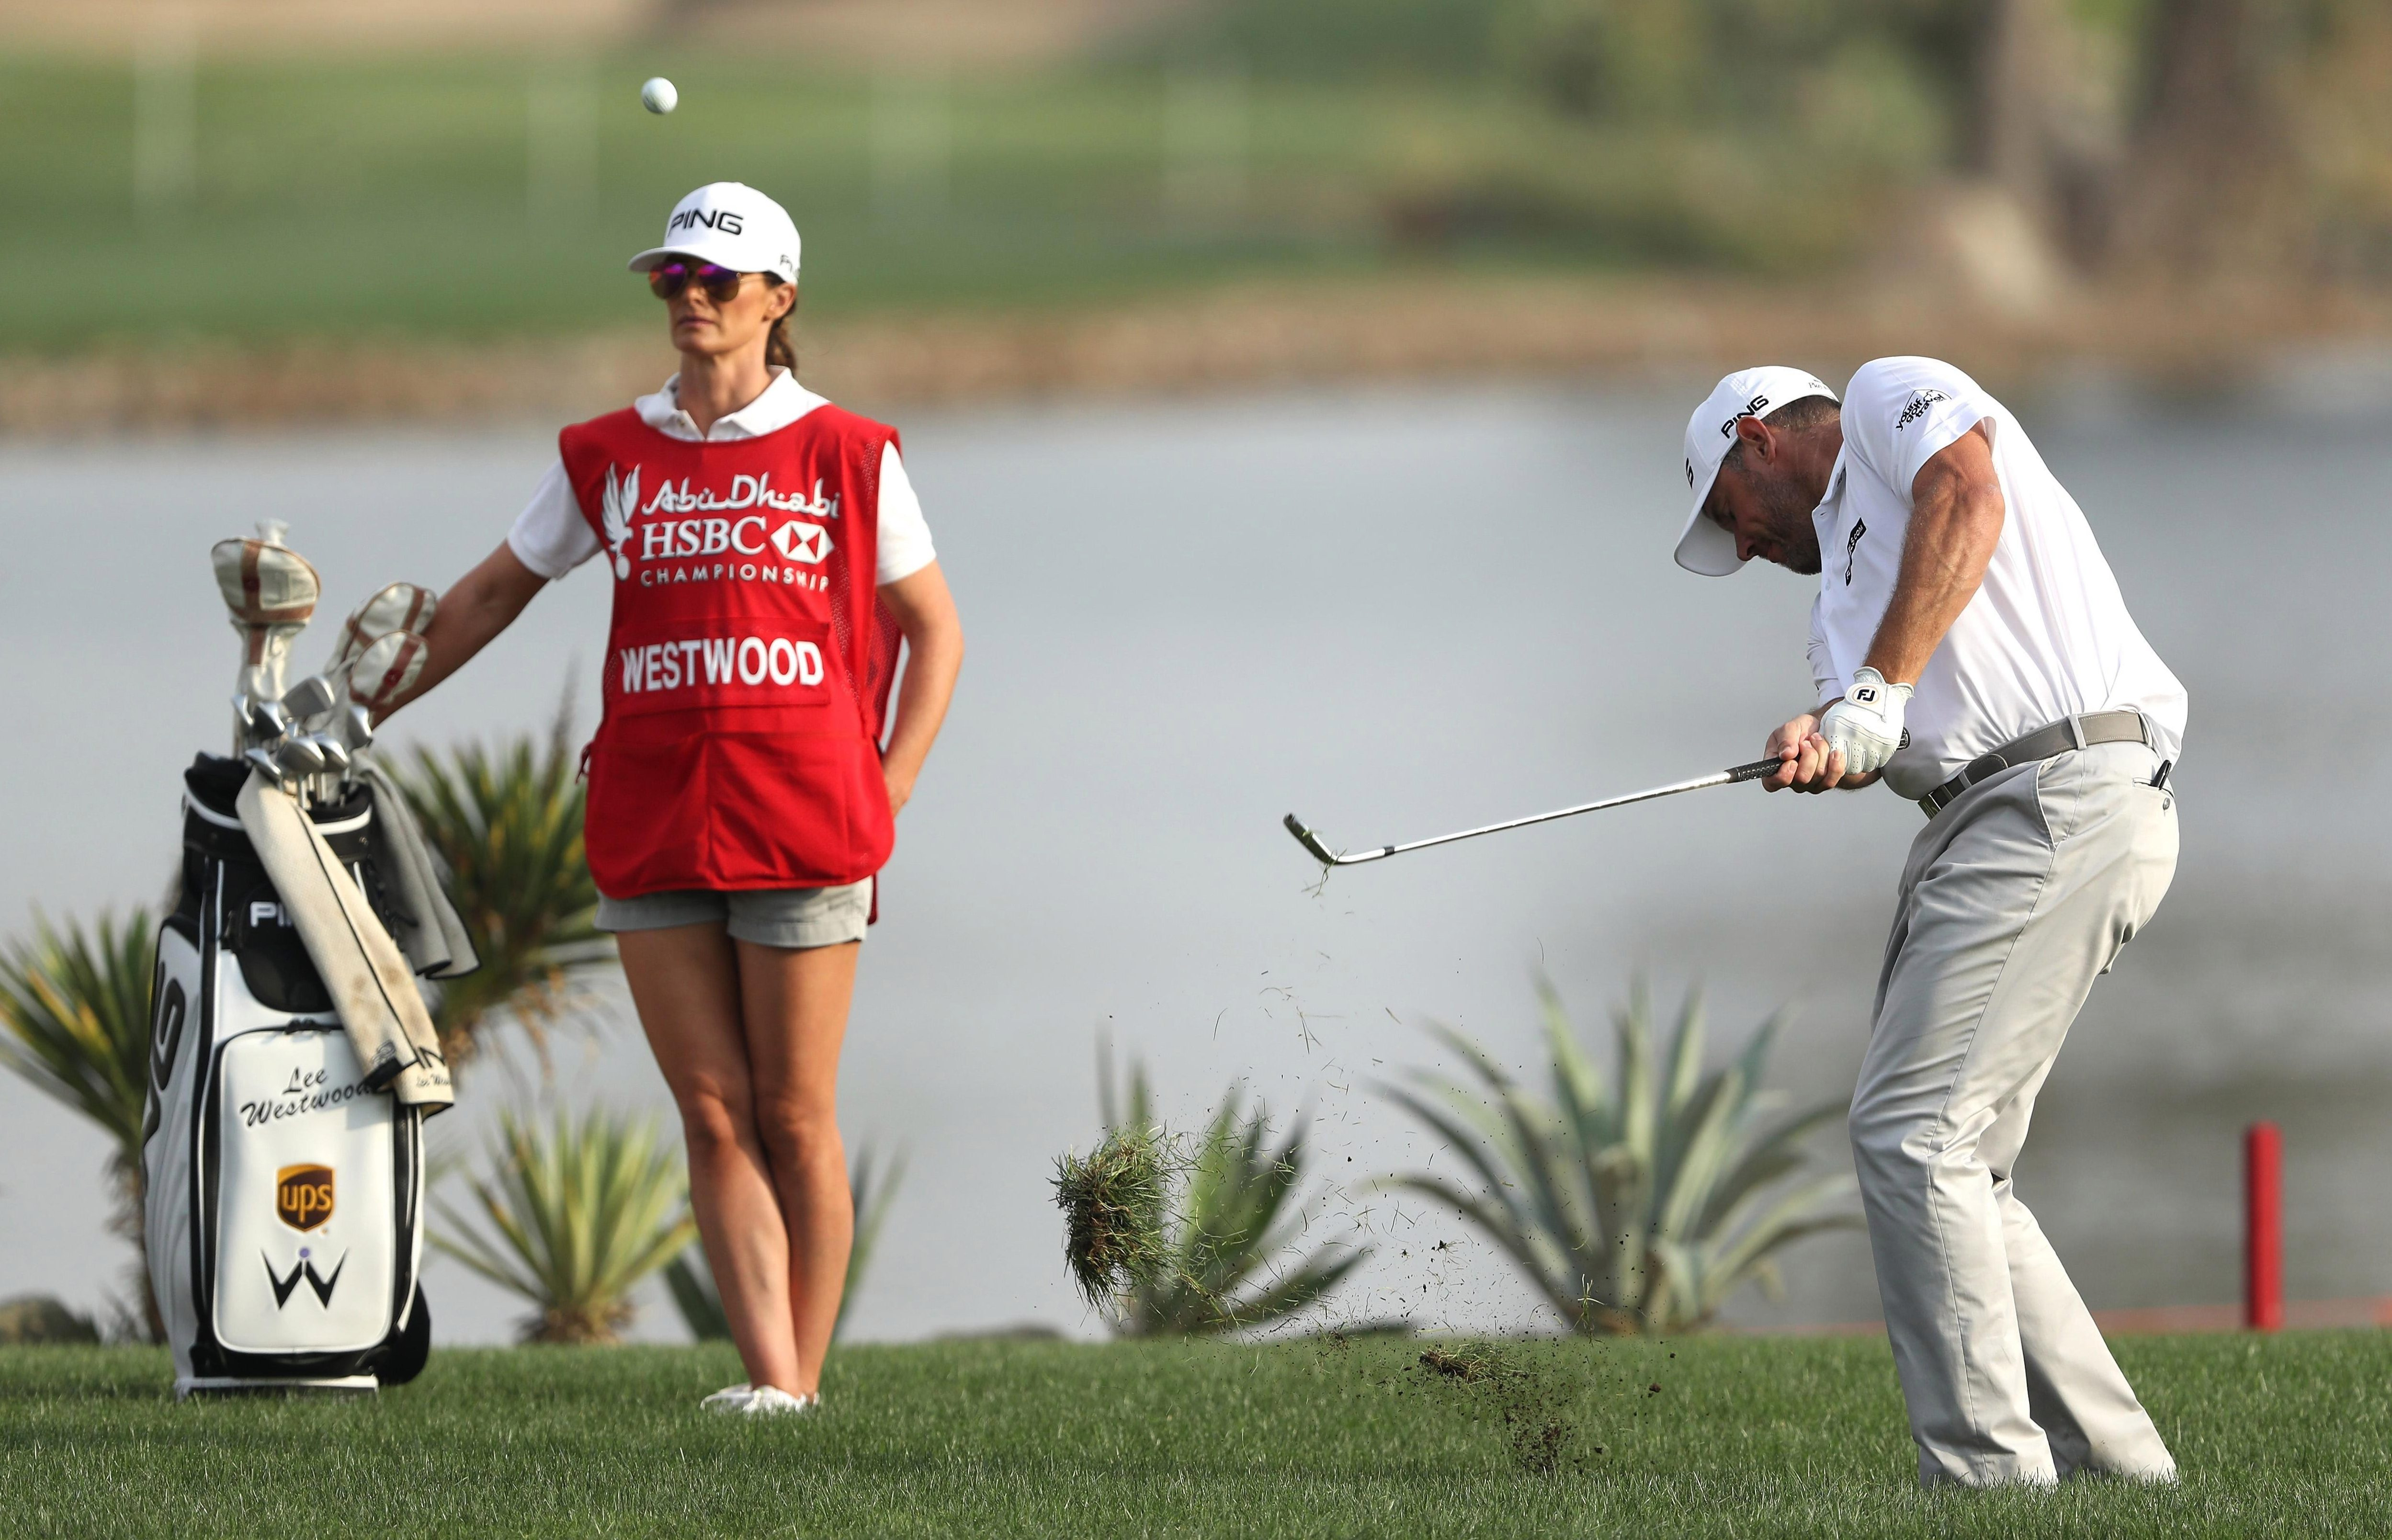 Storey previously caddied for her fella in January last year